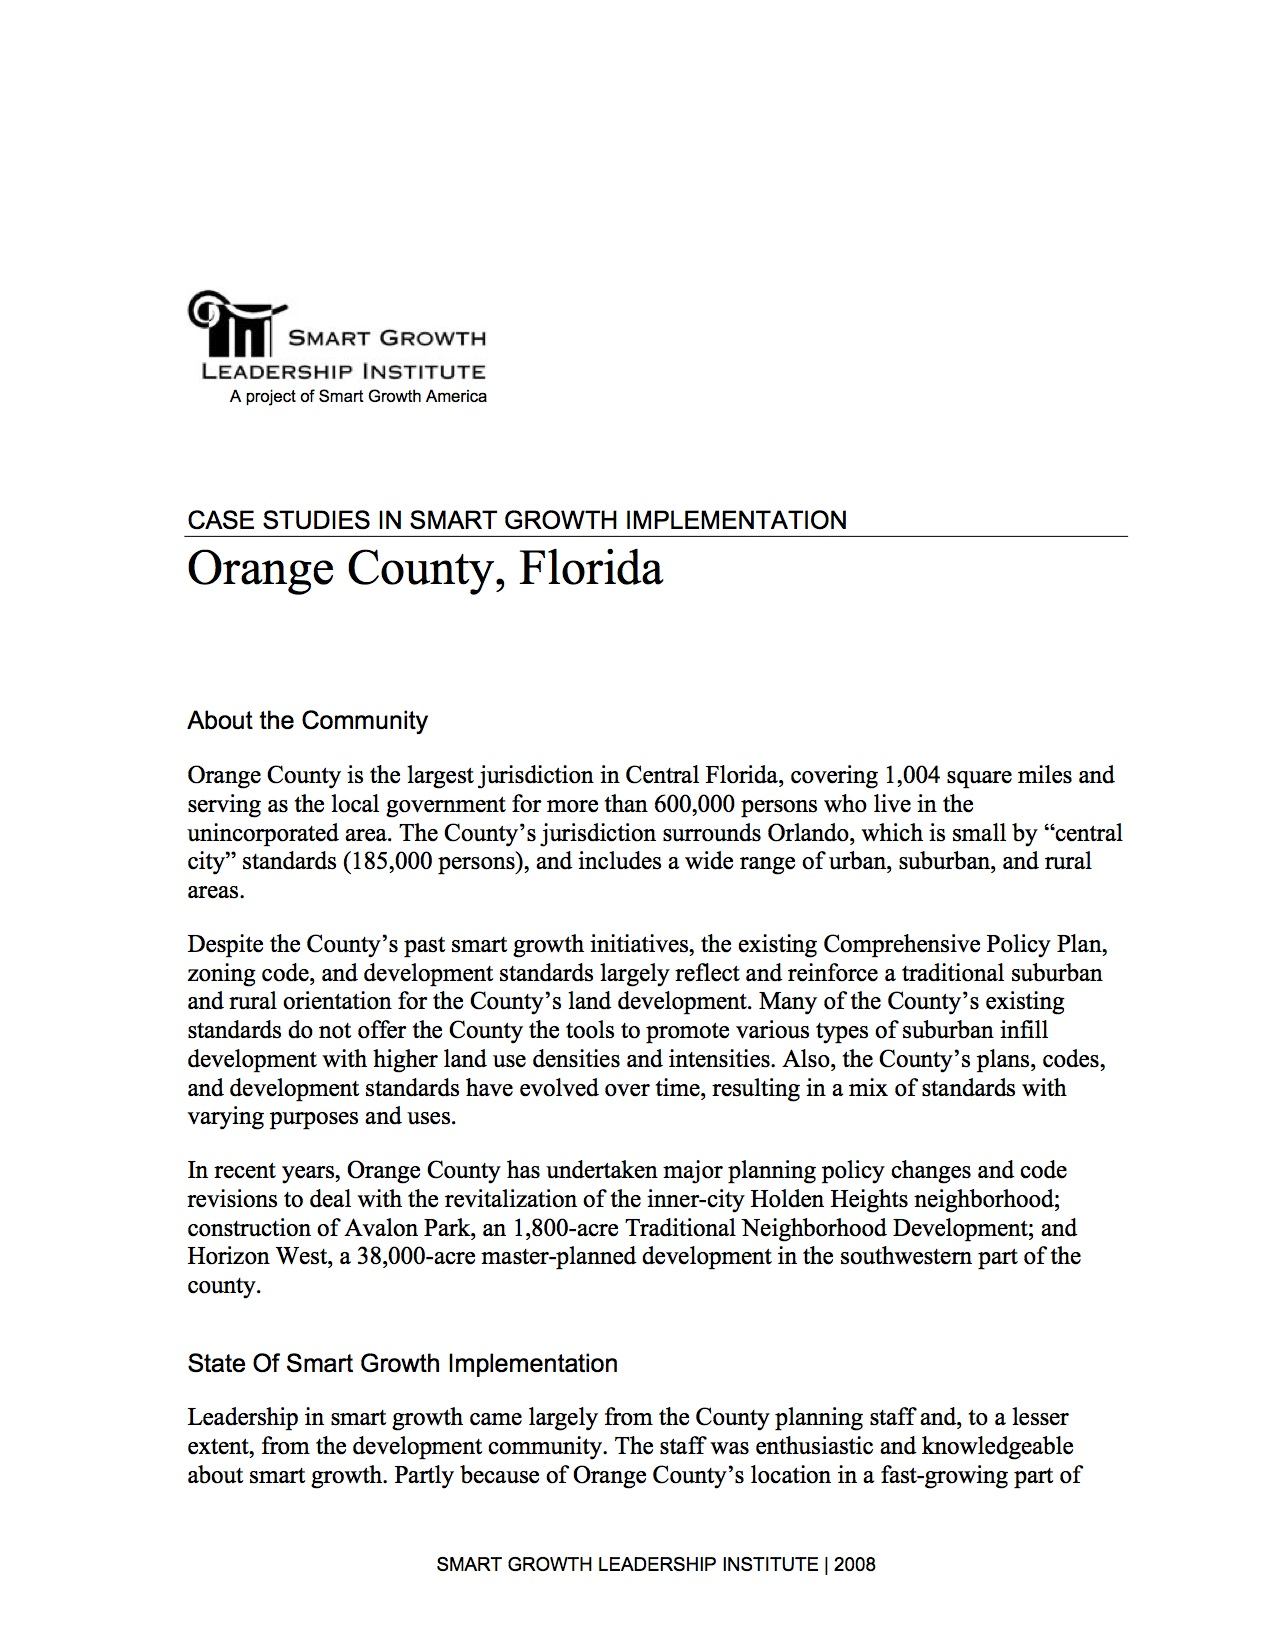 Case Studies in Smart Growth Implementation: Orange County, Florida